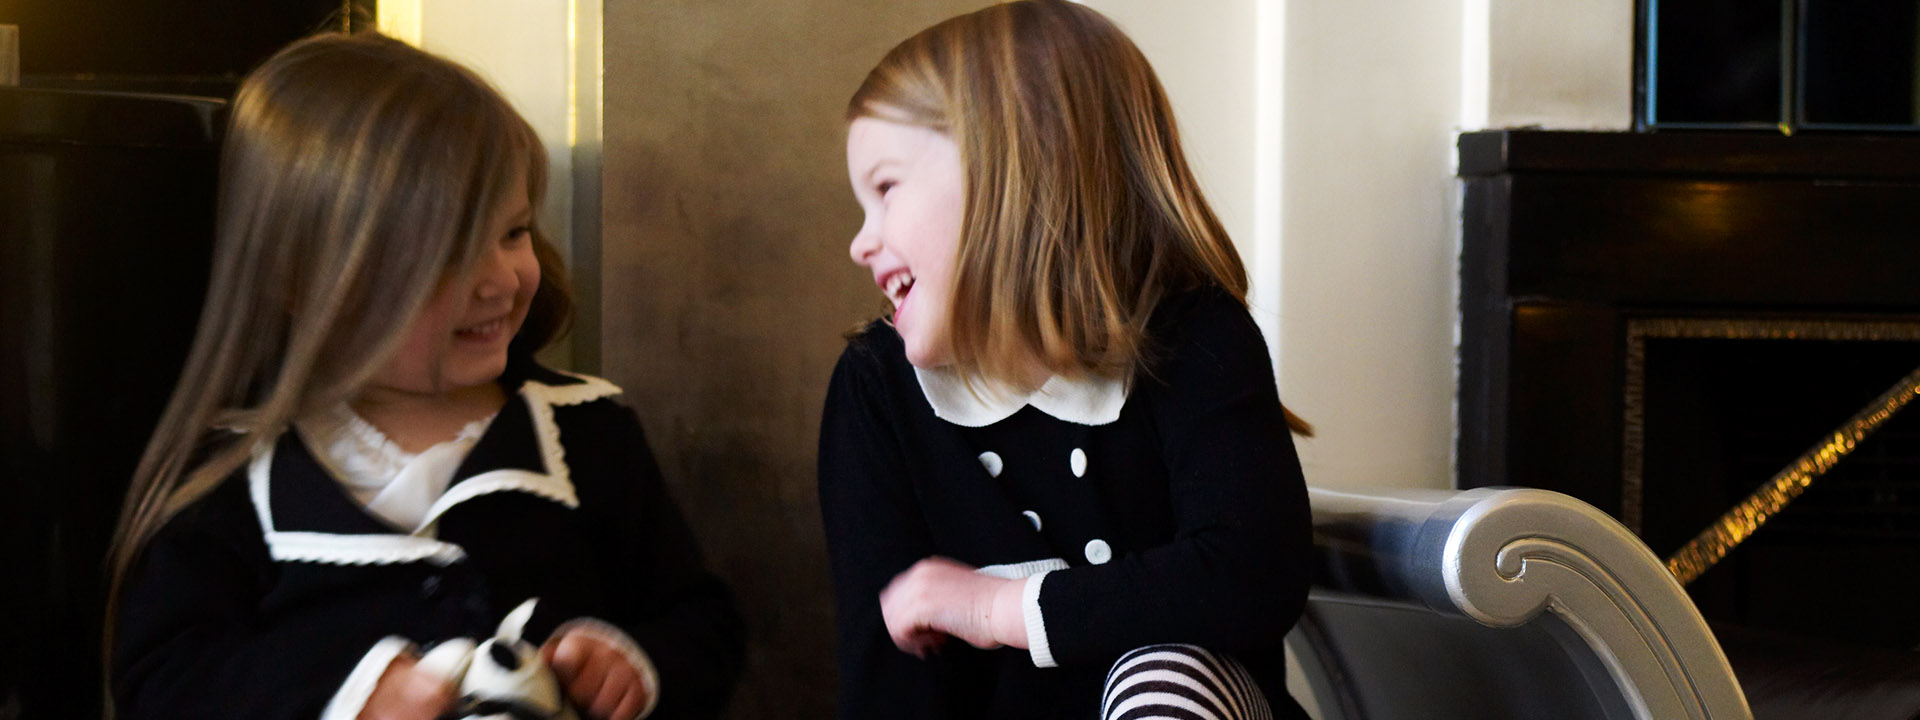 Two children laughing at Claridge's